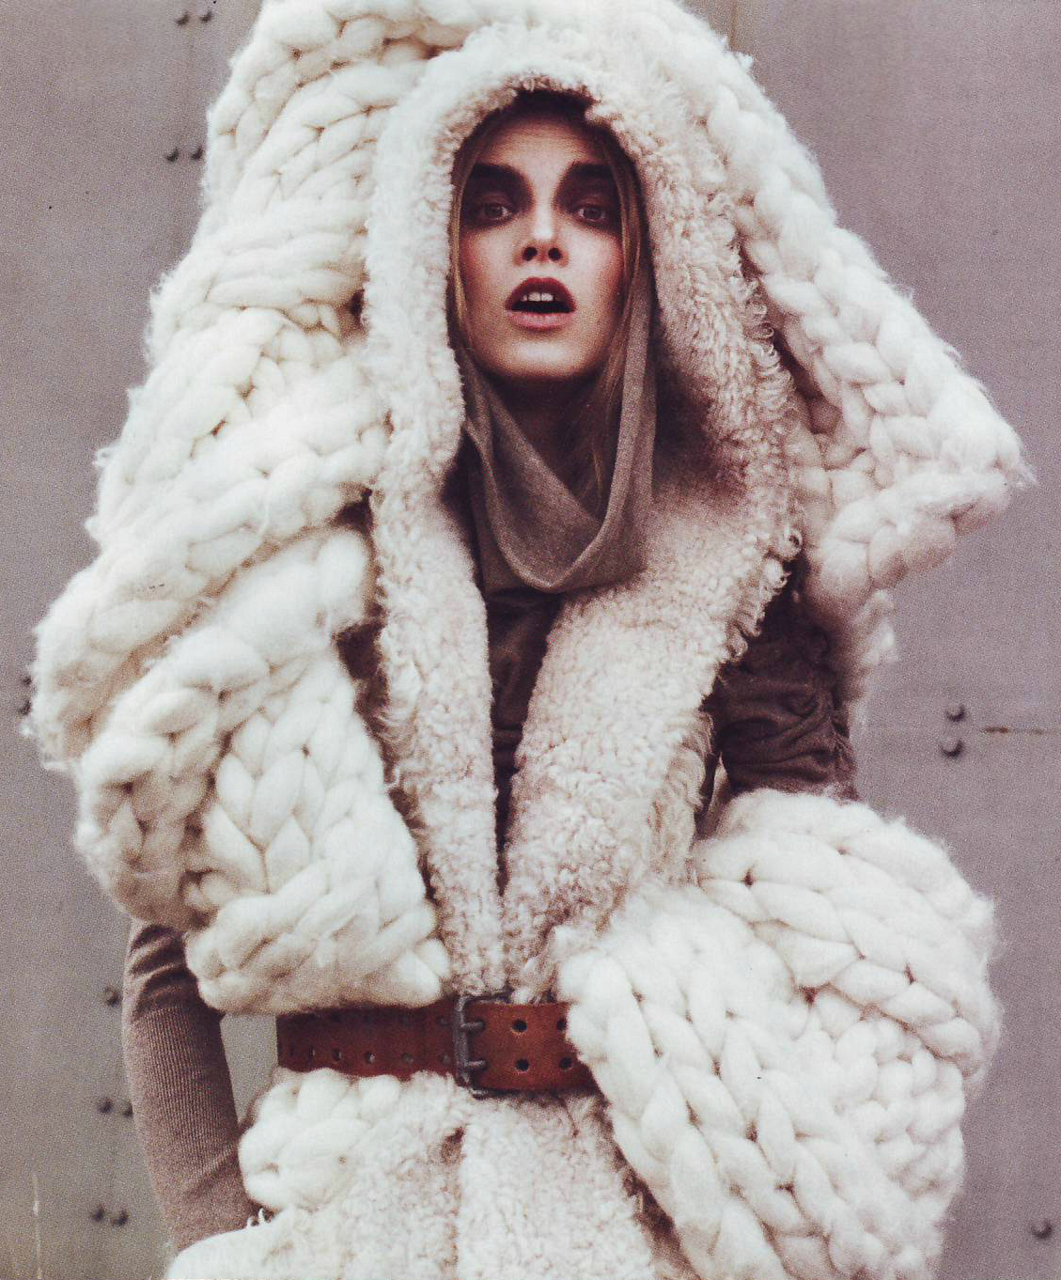 Knitting Patterns For Winter : Mr and Mrs Smith: Faded winter esthetics